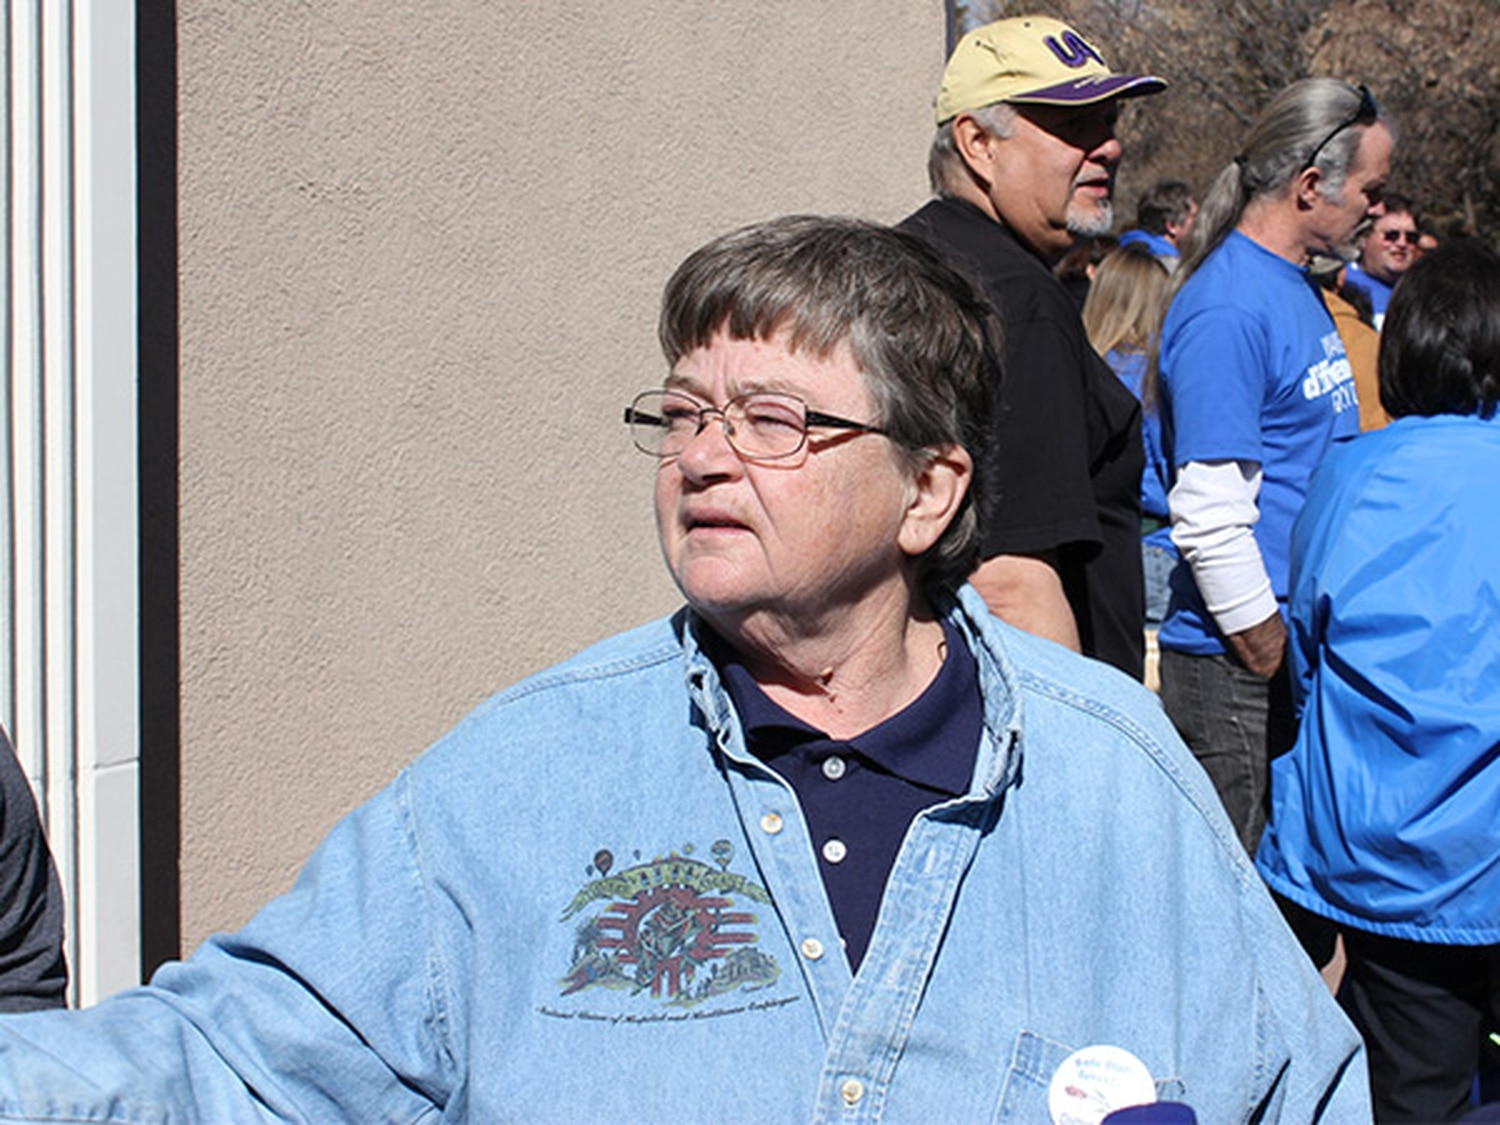 Fonda Osbourn is the president of the labor union that represents St. Vincent hospital nurses.